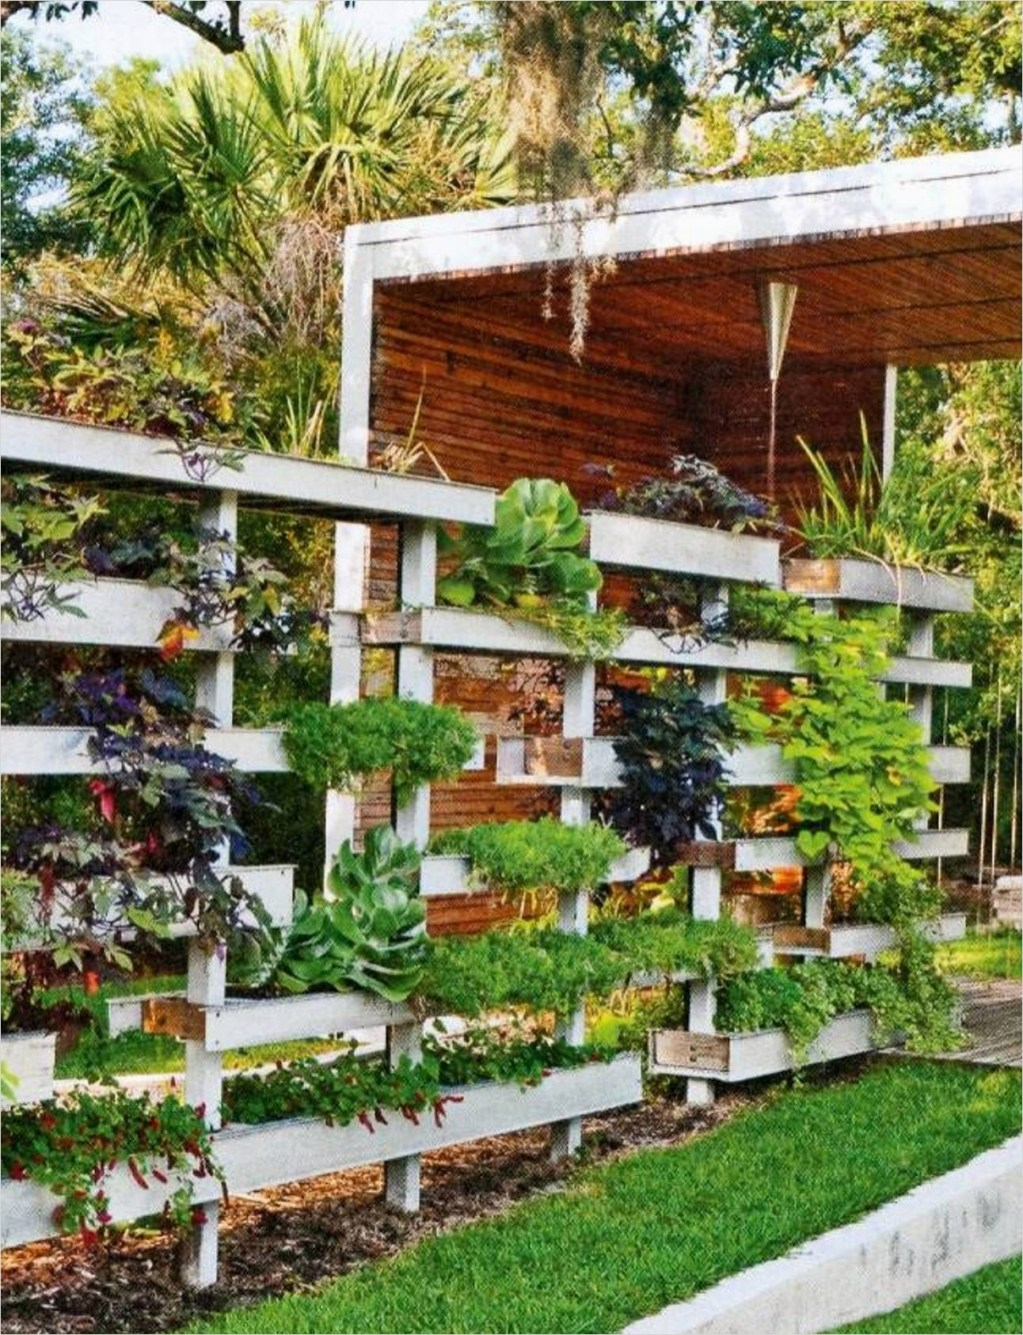 Garden Ideas for Small Spaces 26 Small Space Gardening Ideas with Regard to 10 Garden Ideas for Small Spaces Ward Log Homes 4